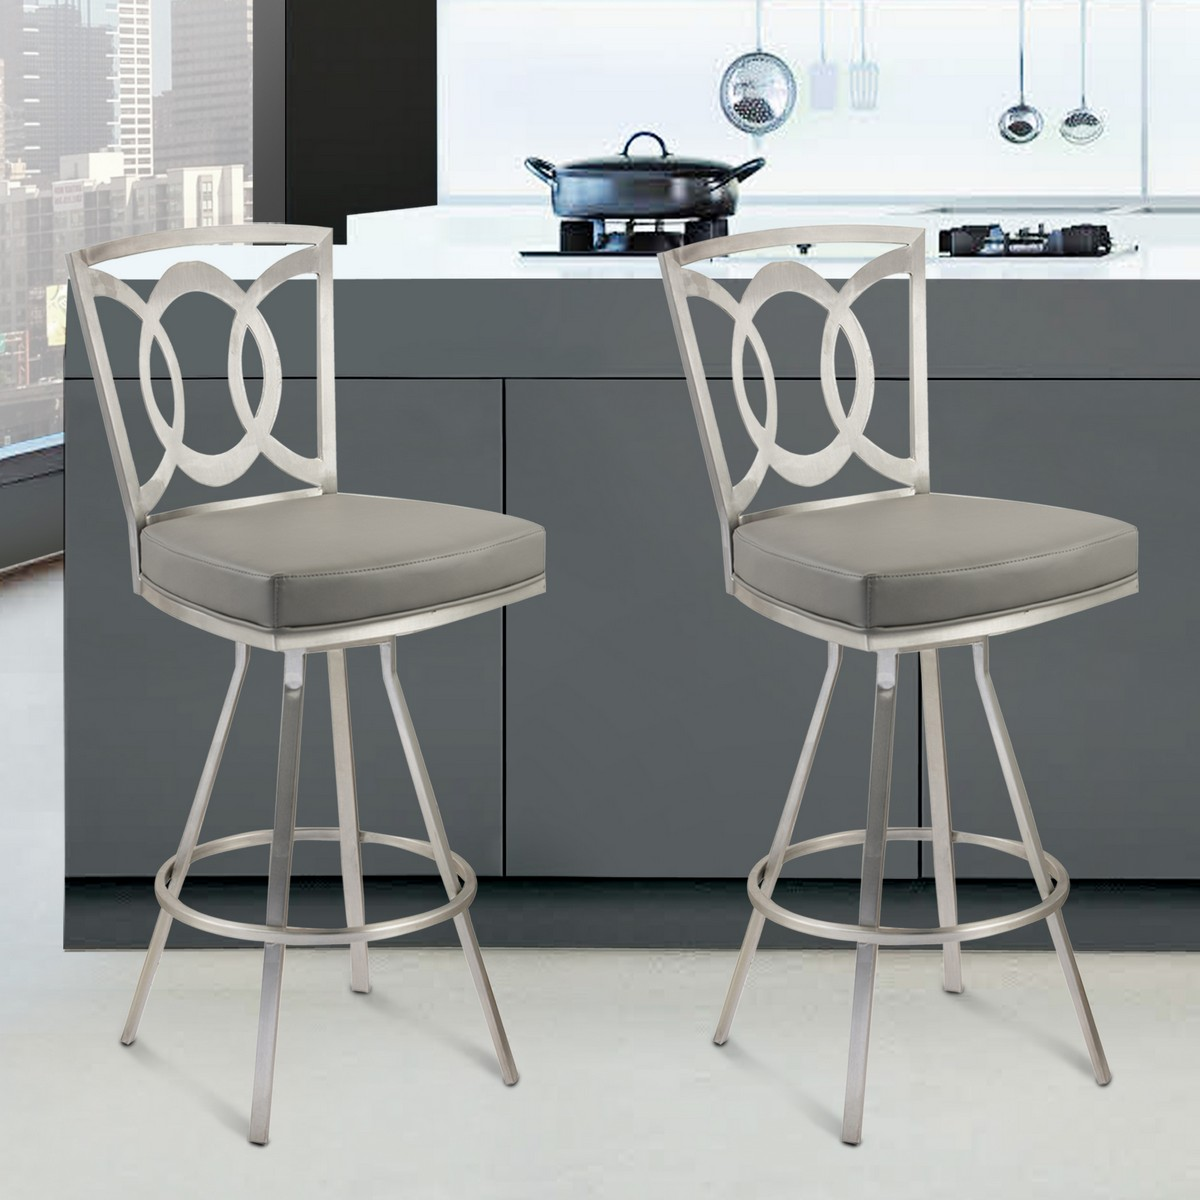 Merveilleux Armen Living Drake 30 Inch Contemporary Swivel Barstool In Gray And  Stainless Steel